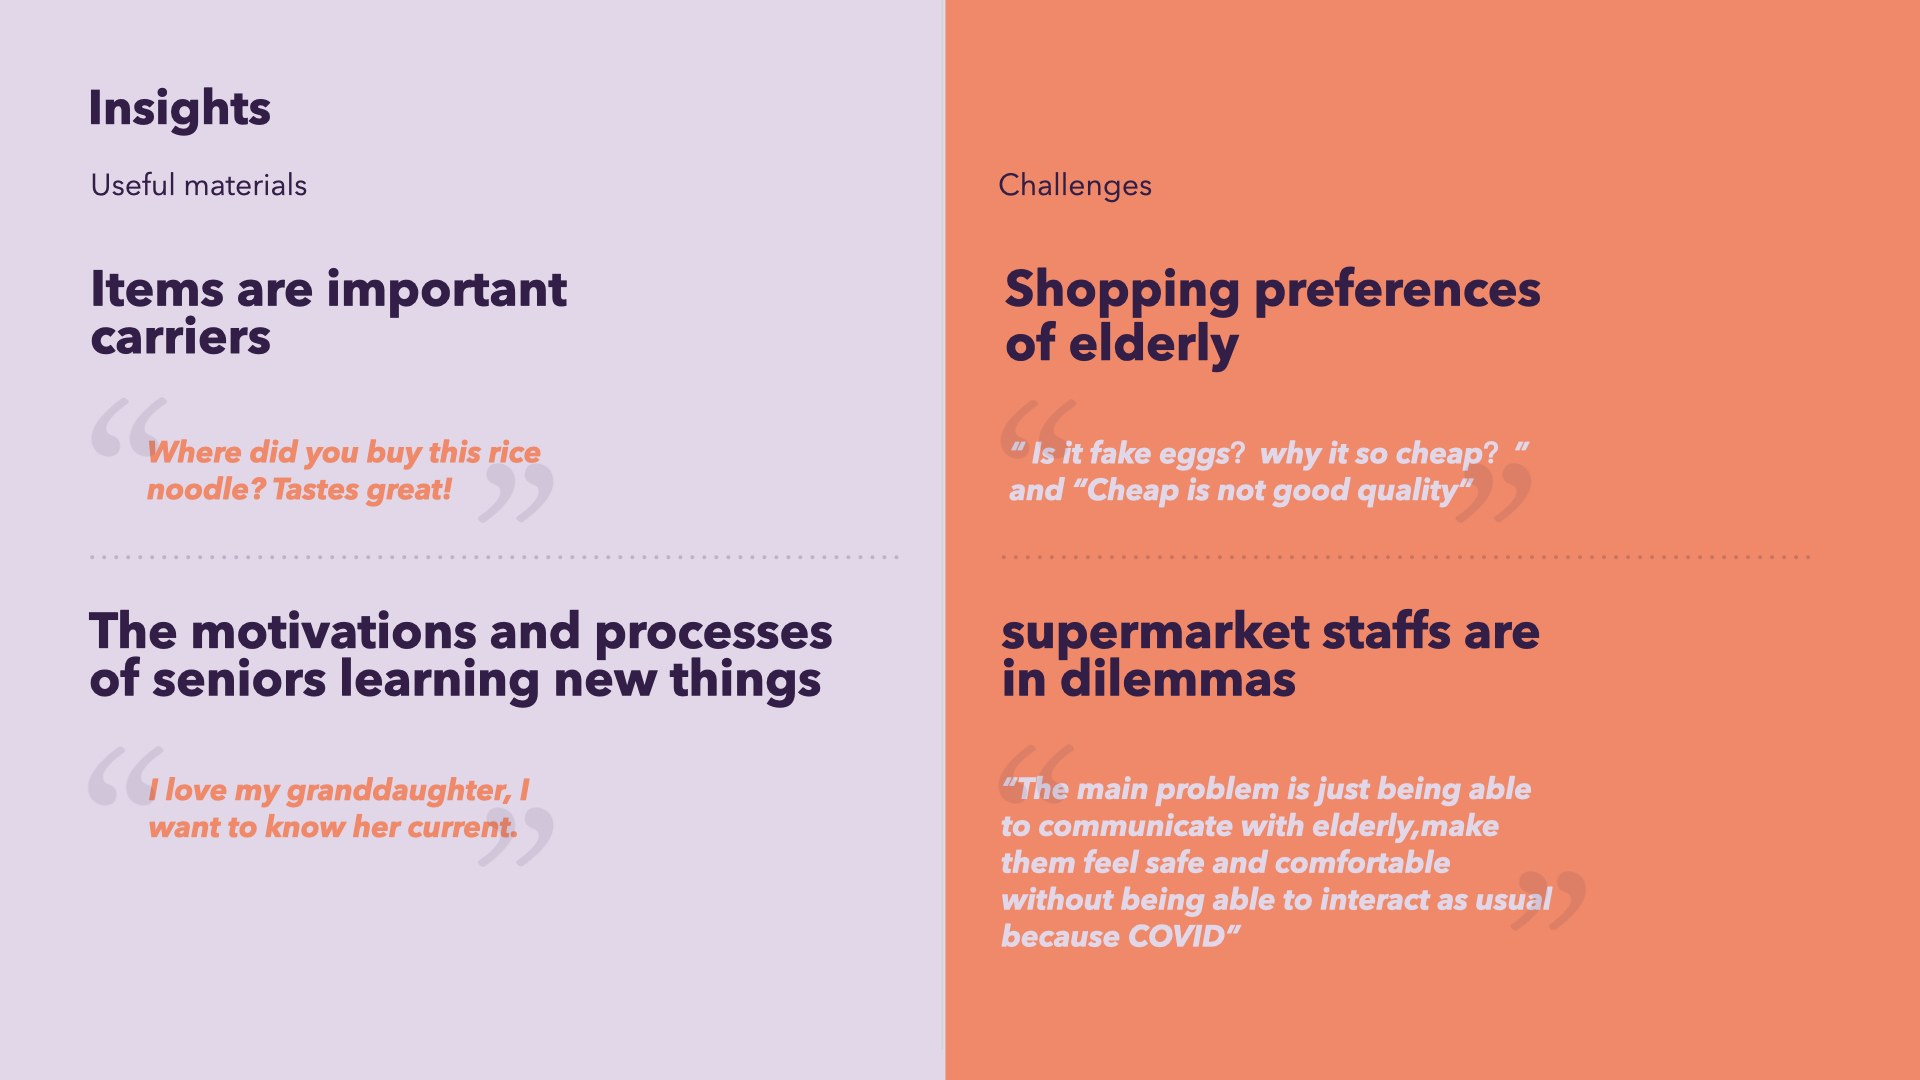 Insights about customers and supermarket staff